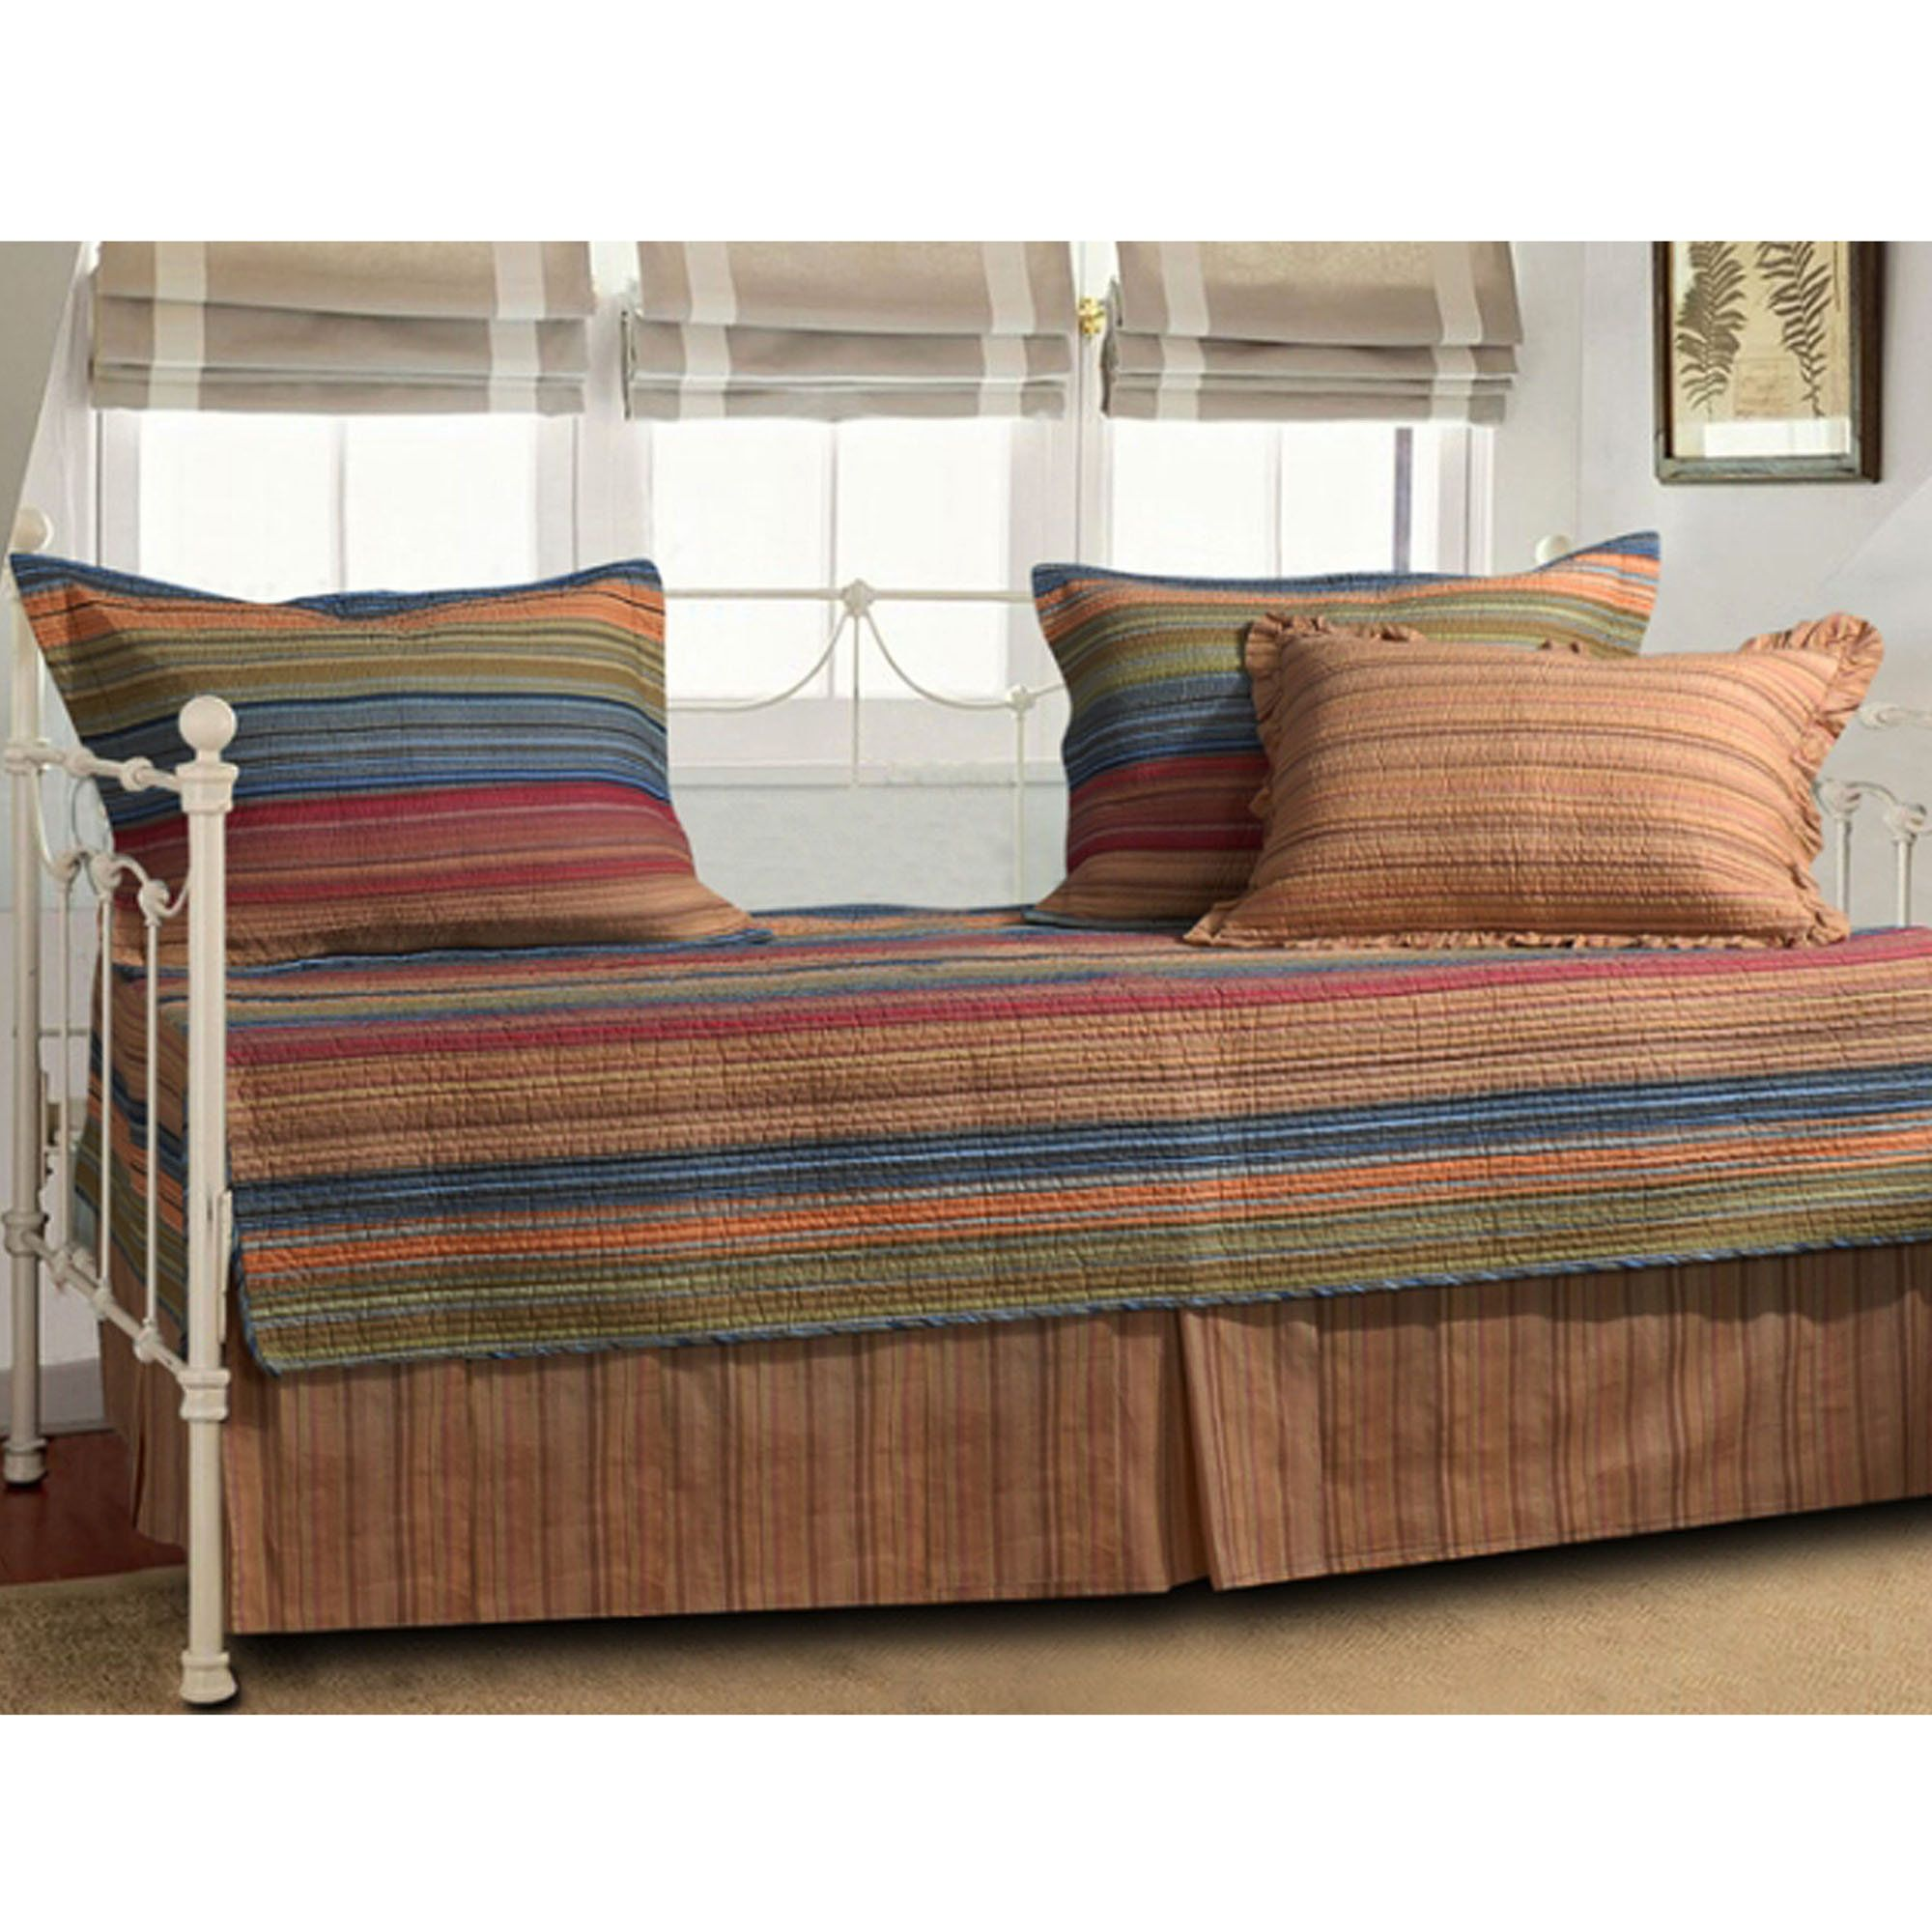 Cozy Daybed Mattress Cover For Your Furniture Twin Covers Pottery Barn